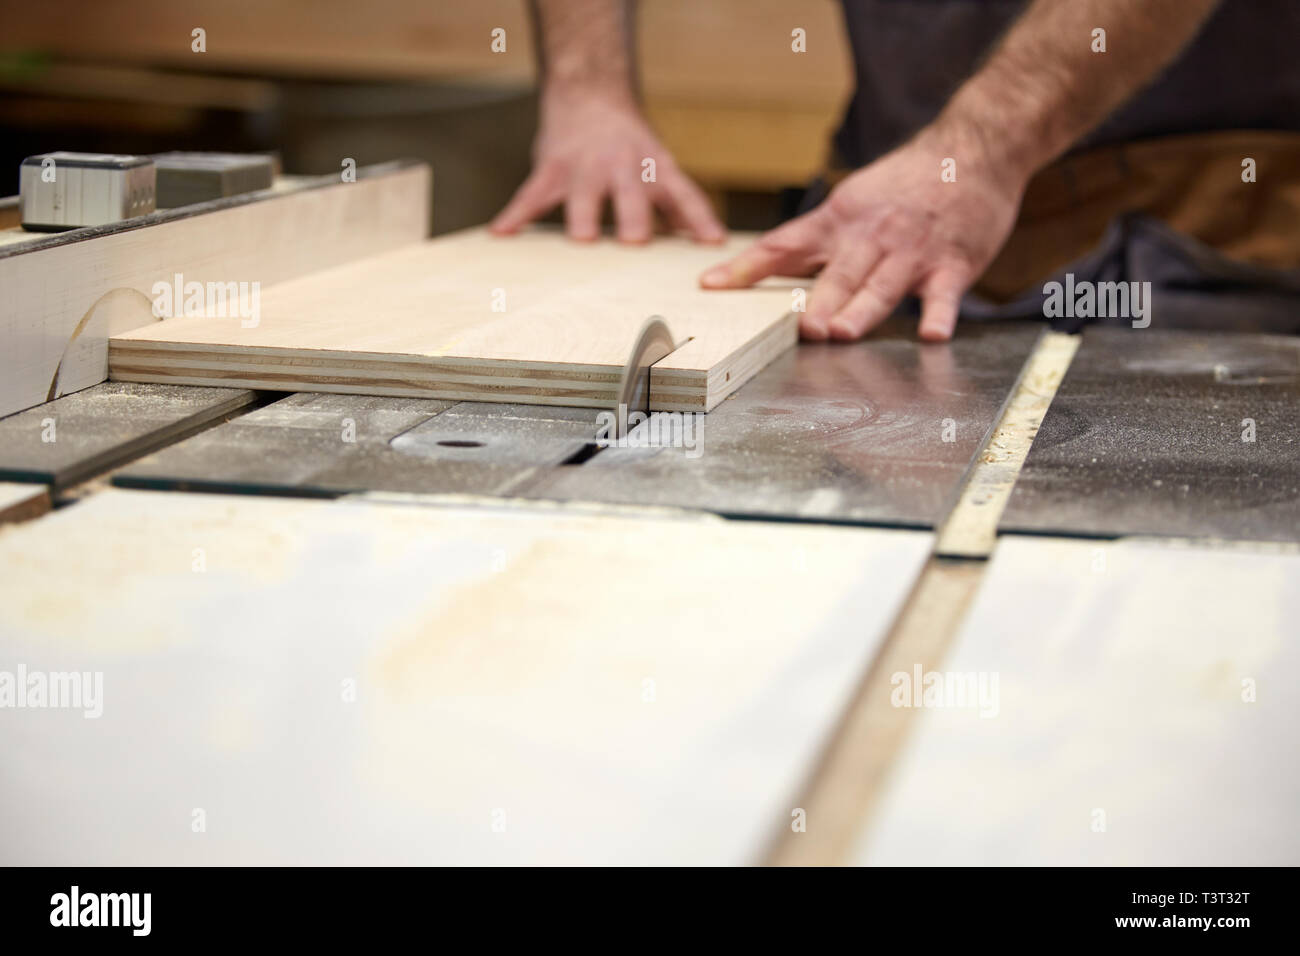 Carpenter using table saw in workshop Stock Photo